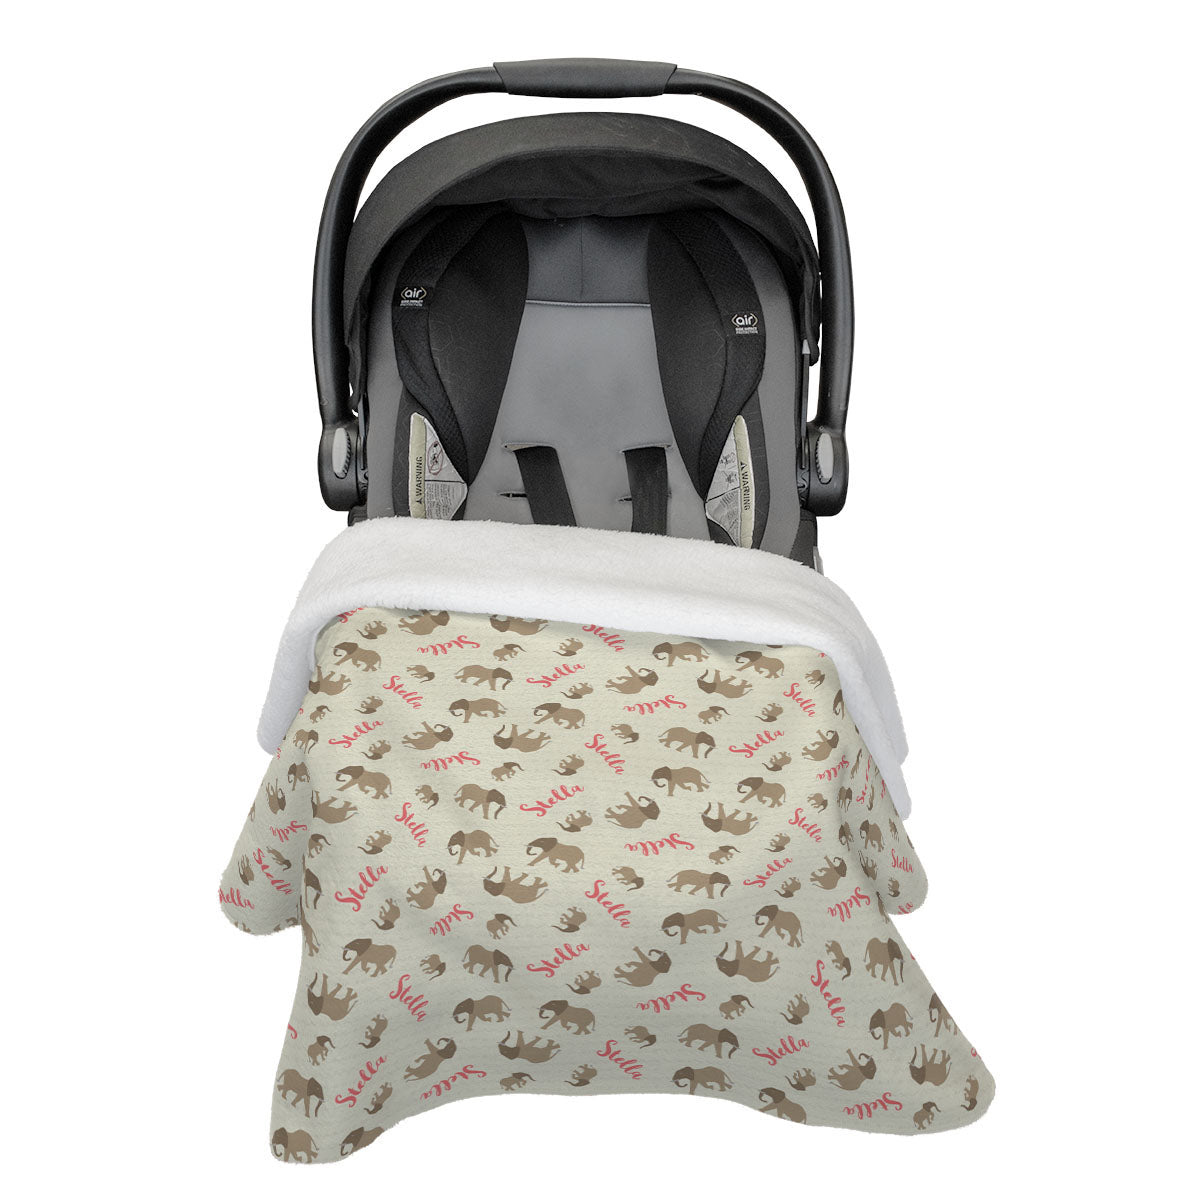 Nyala's Elephant Expedition | Car Seat Blanket